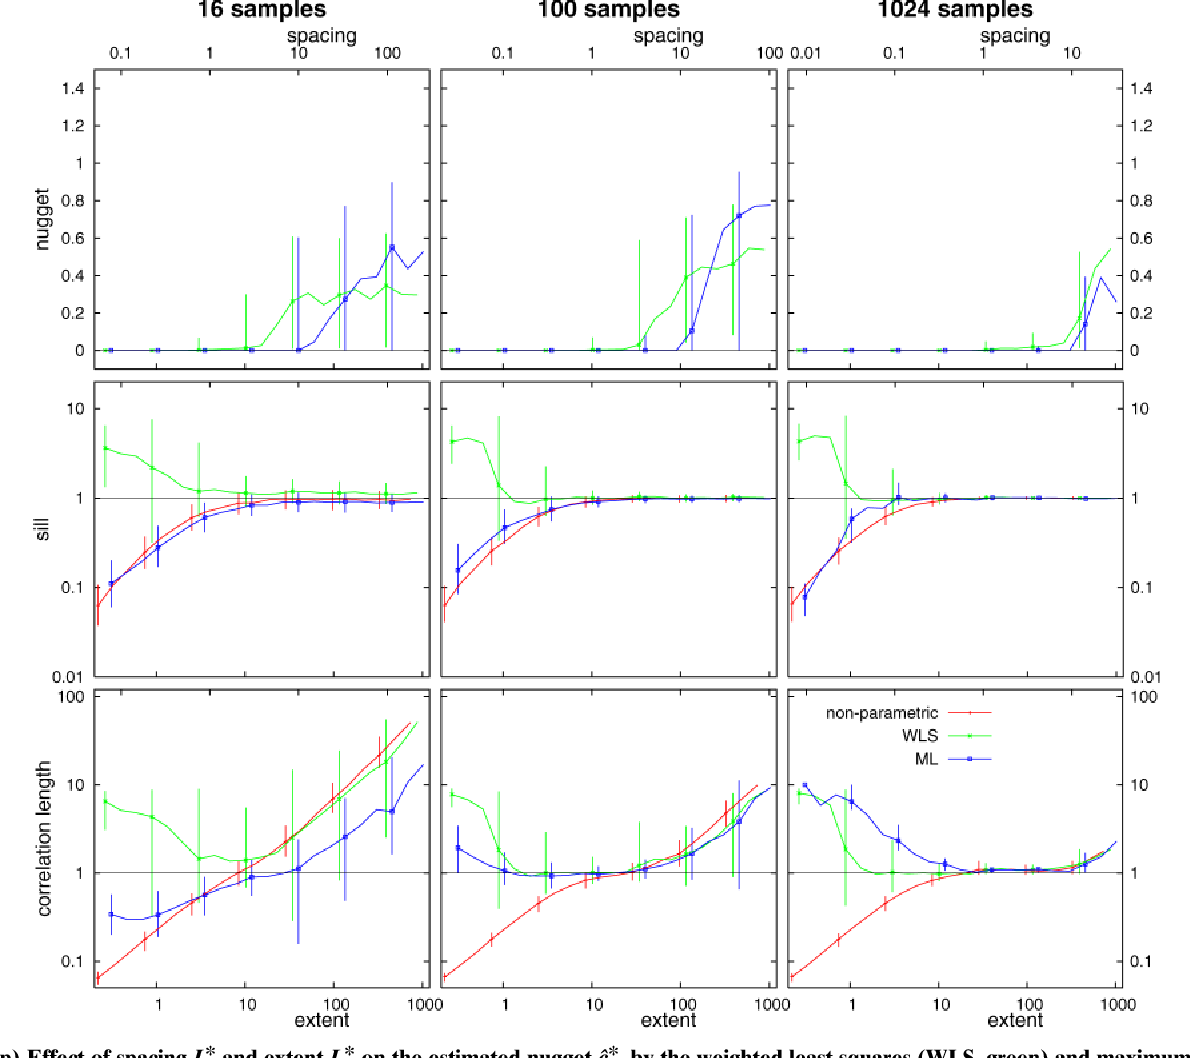 Fig. 8. (Top) Effect of spacing LS* and extent LE* on the estimated nugget ĉ0*, by the weighted least squares (WLS, green) and maximum likelihood (ML, blue) methods. (Middle) Effect of spacing LS* and extent LE* on the estimated sill ĉs* (WLS green, ML blue) and the sample variance s2* (red). (Bottom) Effect of spacing LS* and extent LE* on the estimated correlation length l̂* (WLS green, ML blue) and the integral scale Ĵ* (red). Random sampling (median with 25 and 75% quantiles as error bars). All are for the three-parameter model.